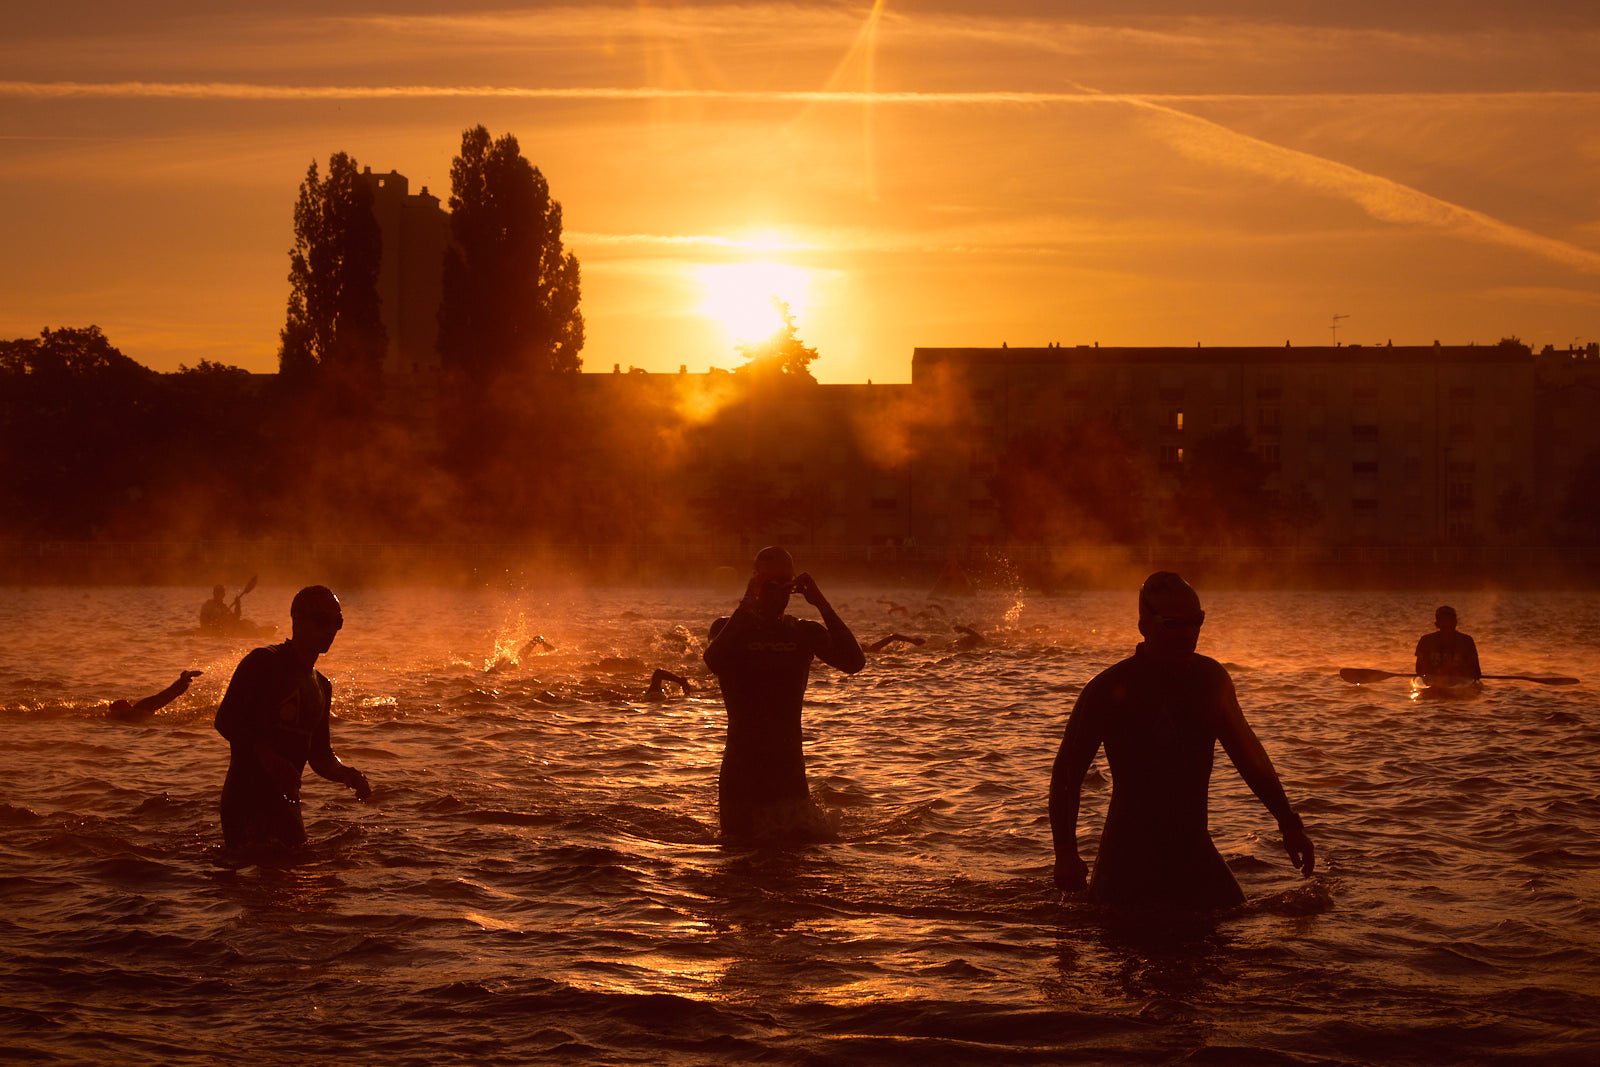 Athletes compete during the swimming course of Ironman vichy on August 25, 2018 in Vichy, France.